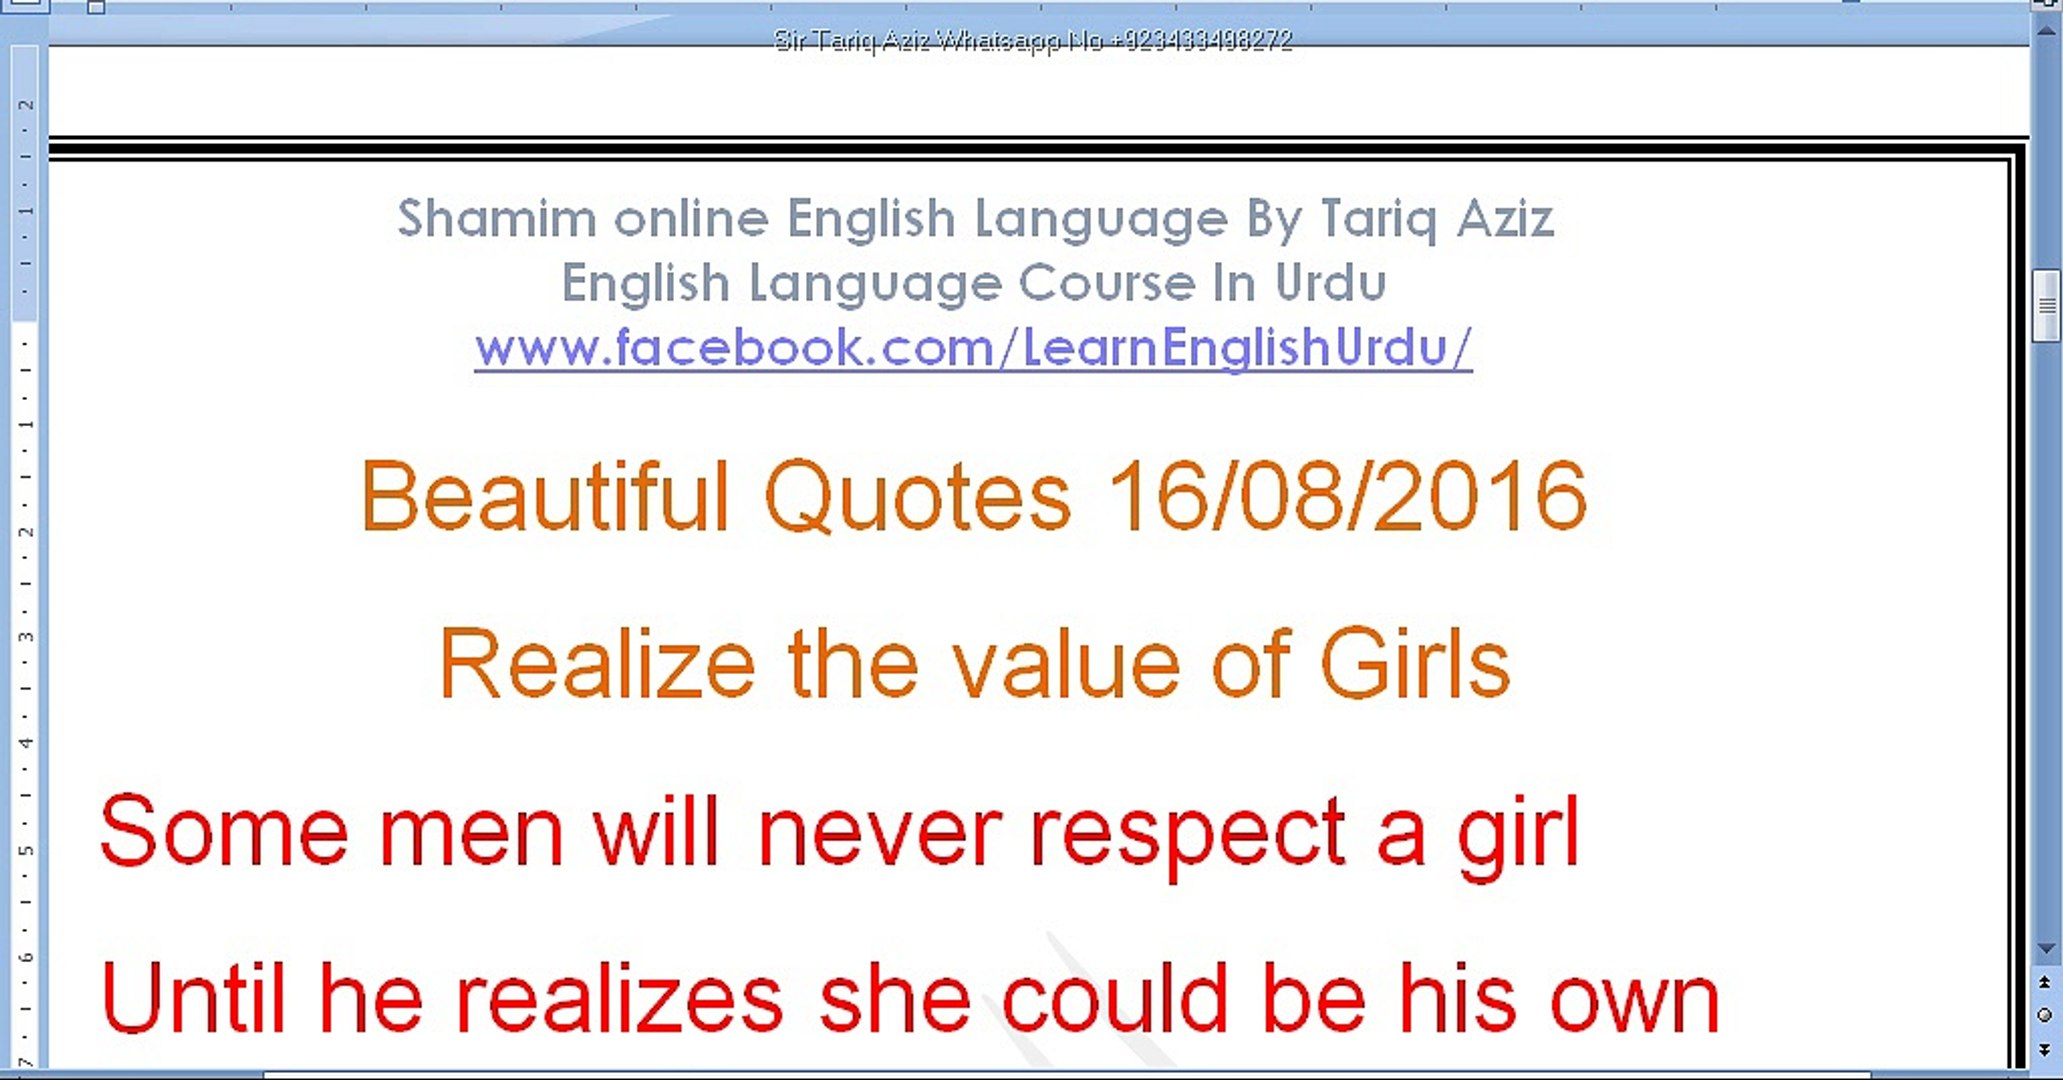 beautiful quotes and golden words realize the value of girls